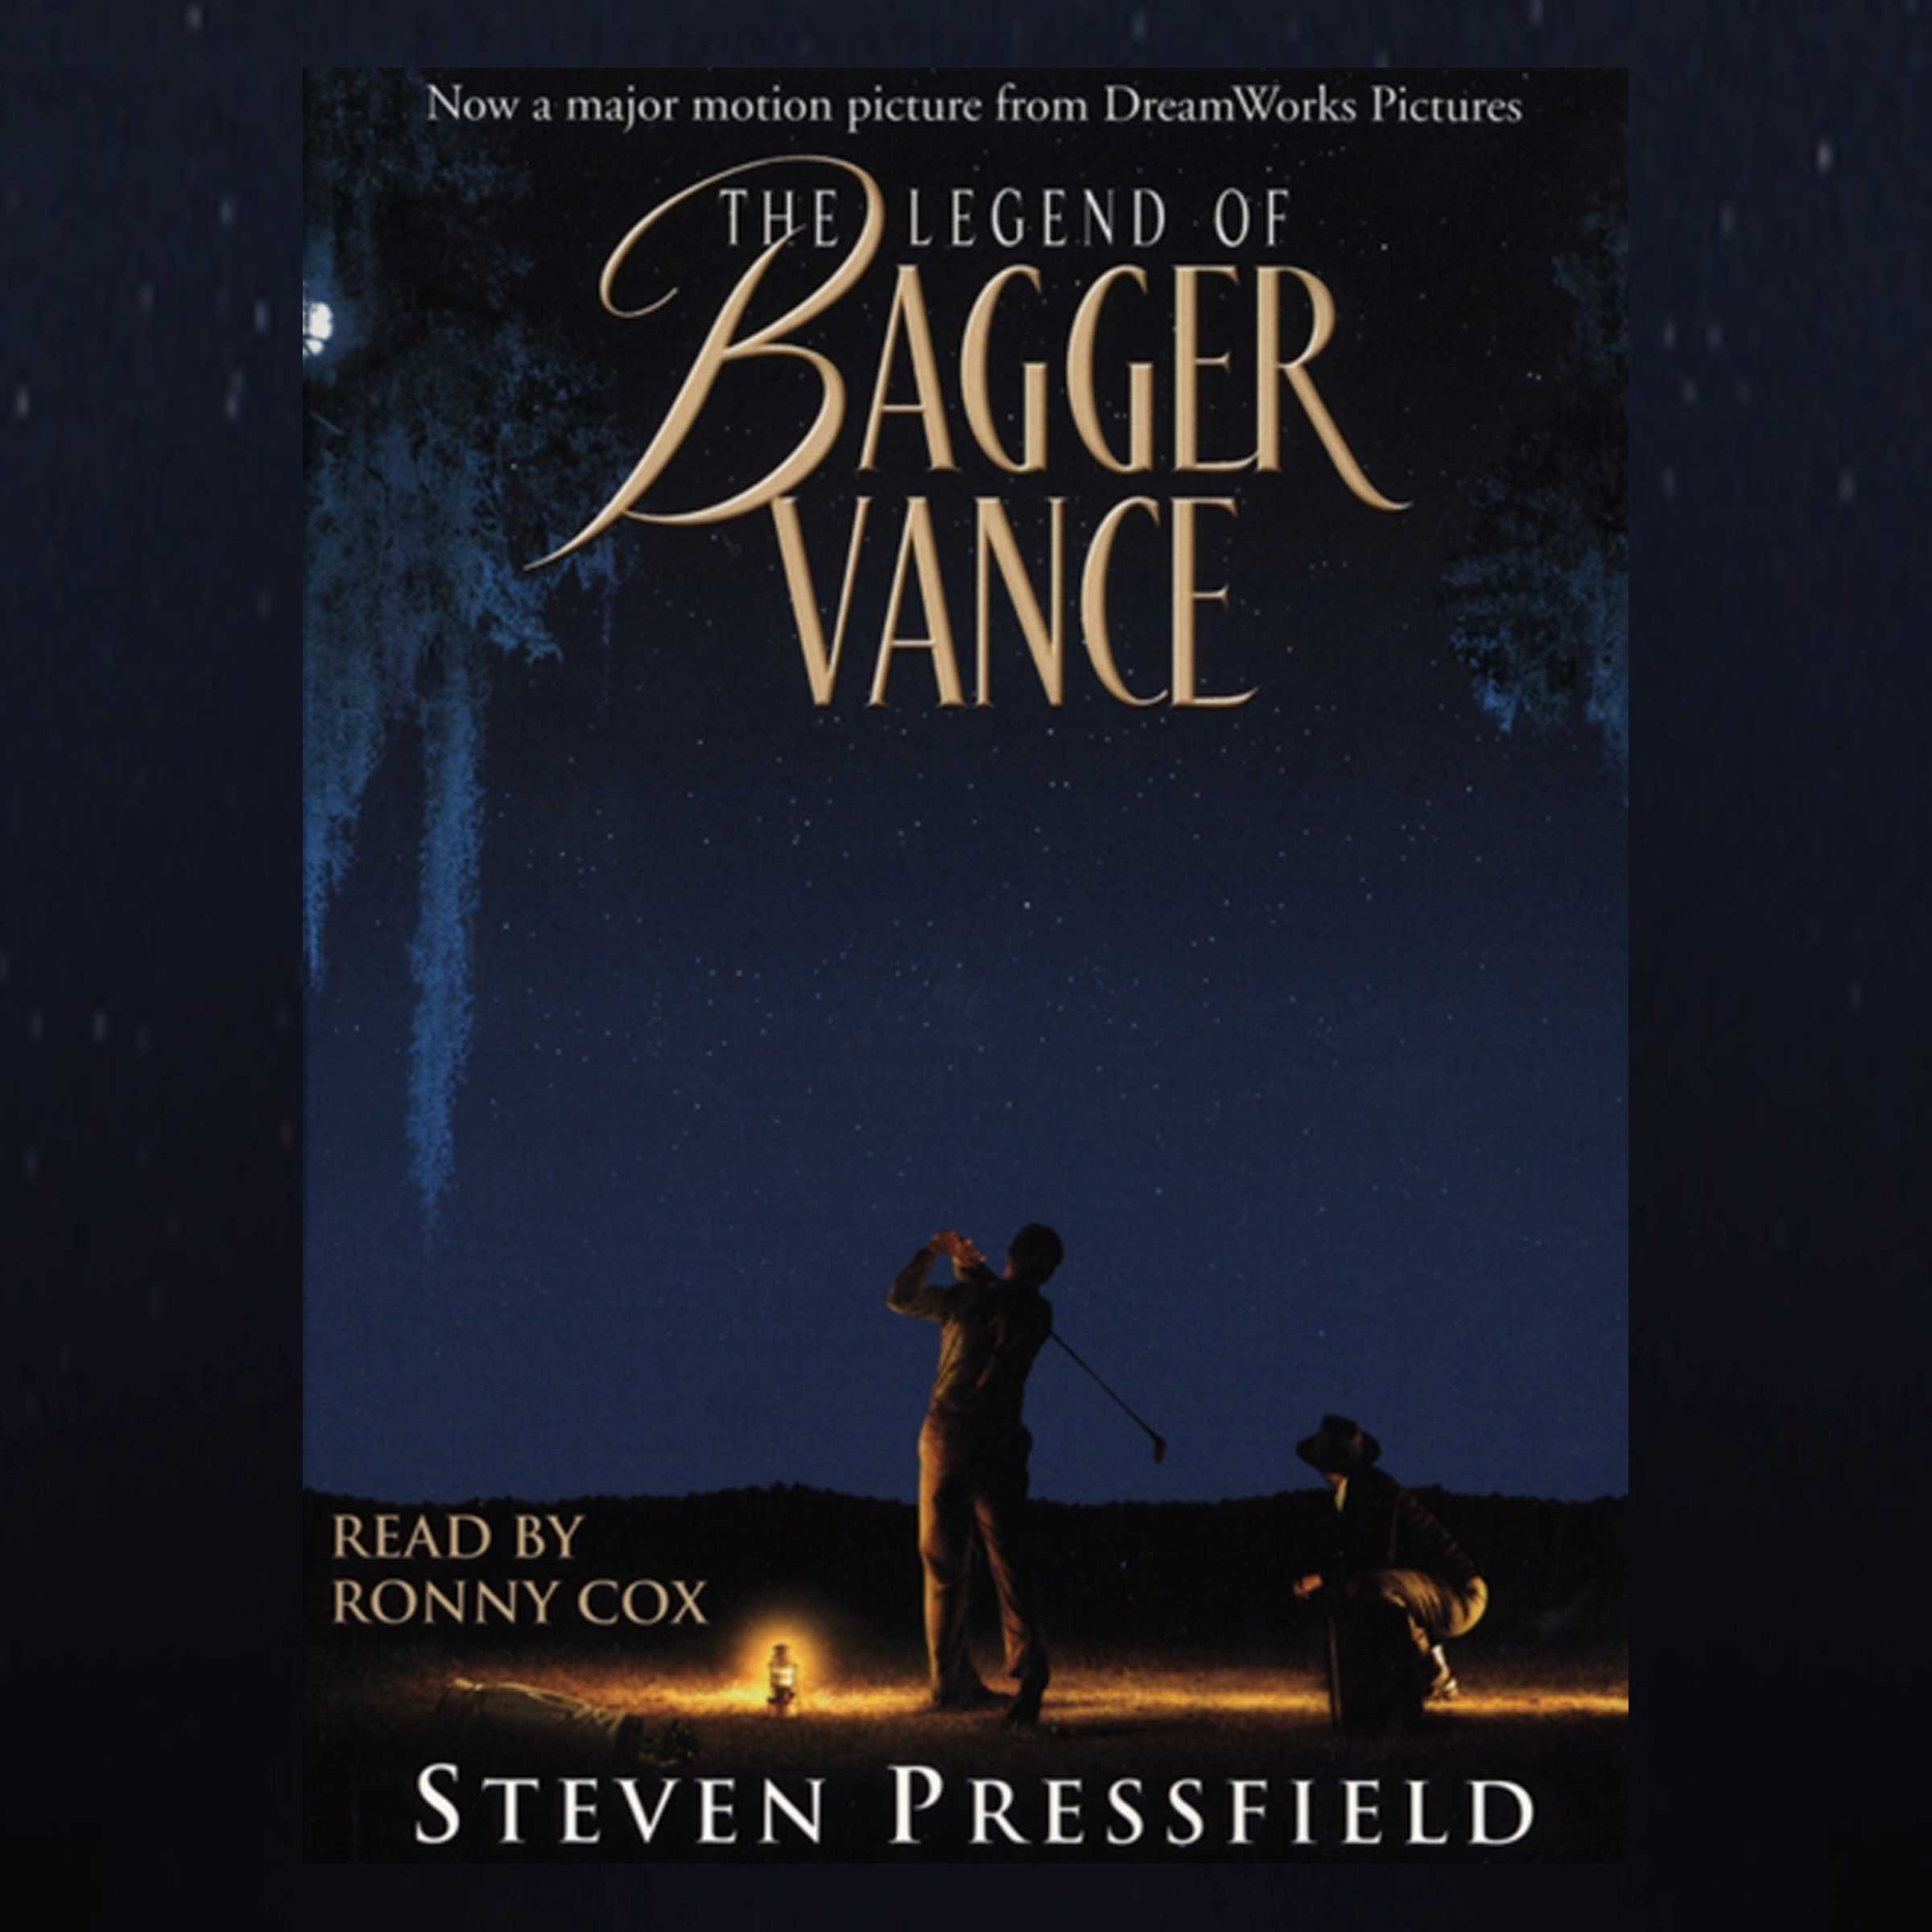 Legend-of-bagger-vance-(movie-tie-in)-9780743519656_hr